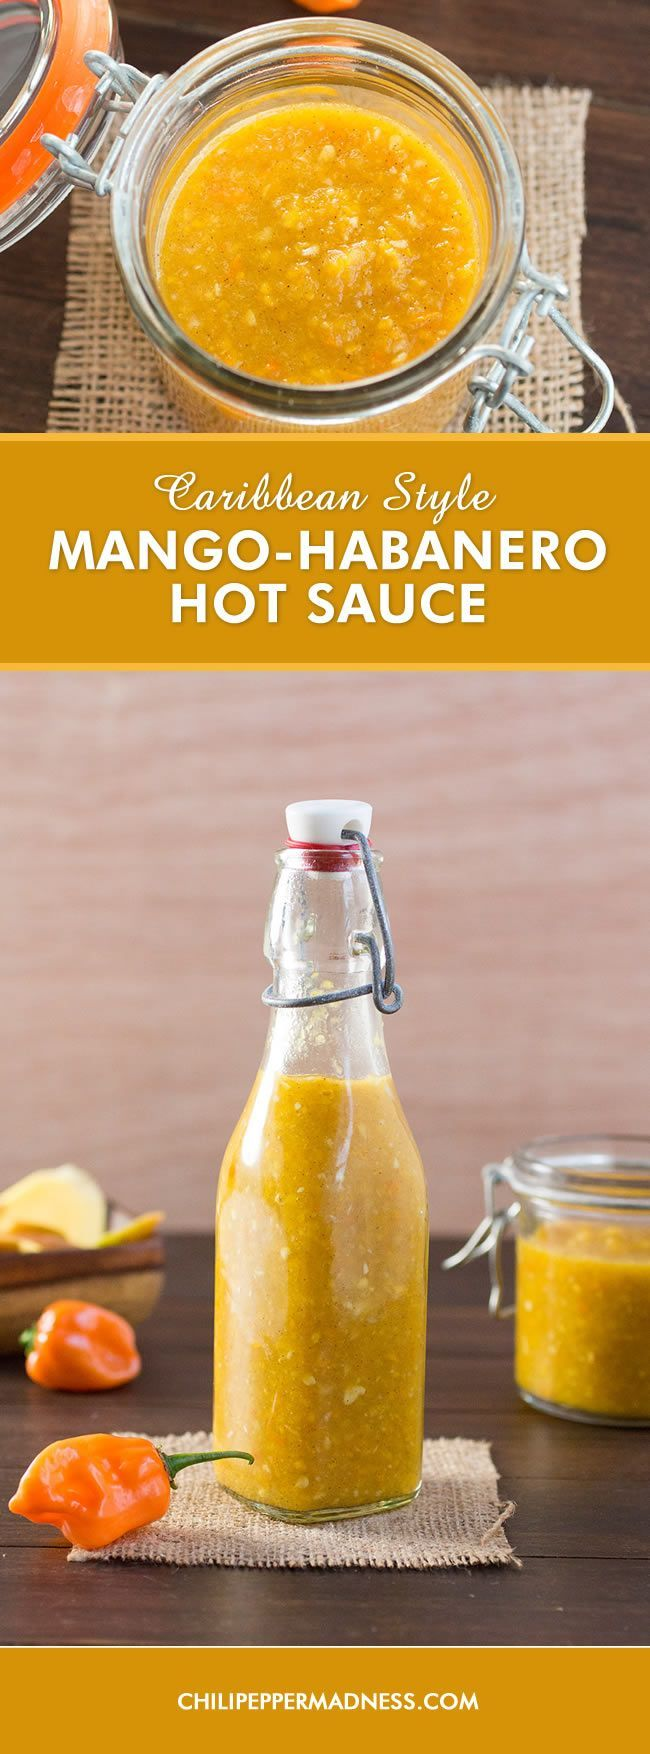 Caribbean-Style Mango-Habanero Hot Sauce - Homemade hot sauce! We're going Caribbean with this recipe, bringing in flaming habanero peppers, velvety mango, vinegar, honey, allspice and more. Drizzle it over chicken, shrimp or fish. Love it. It's a way of life. Video included with the recipe.